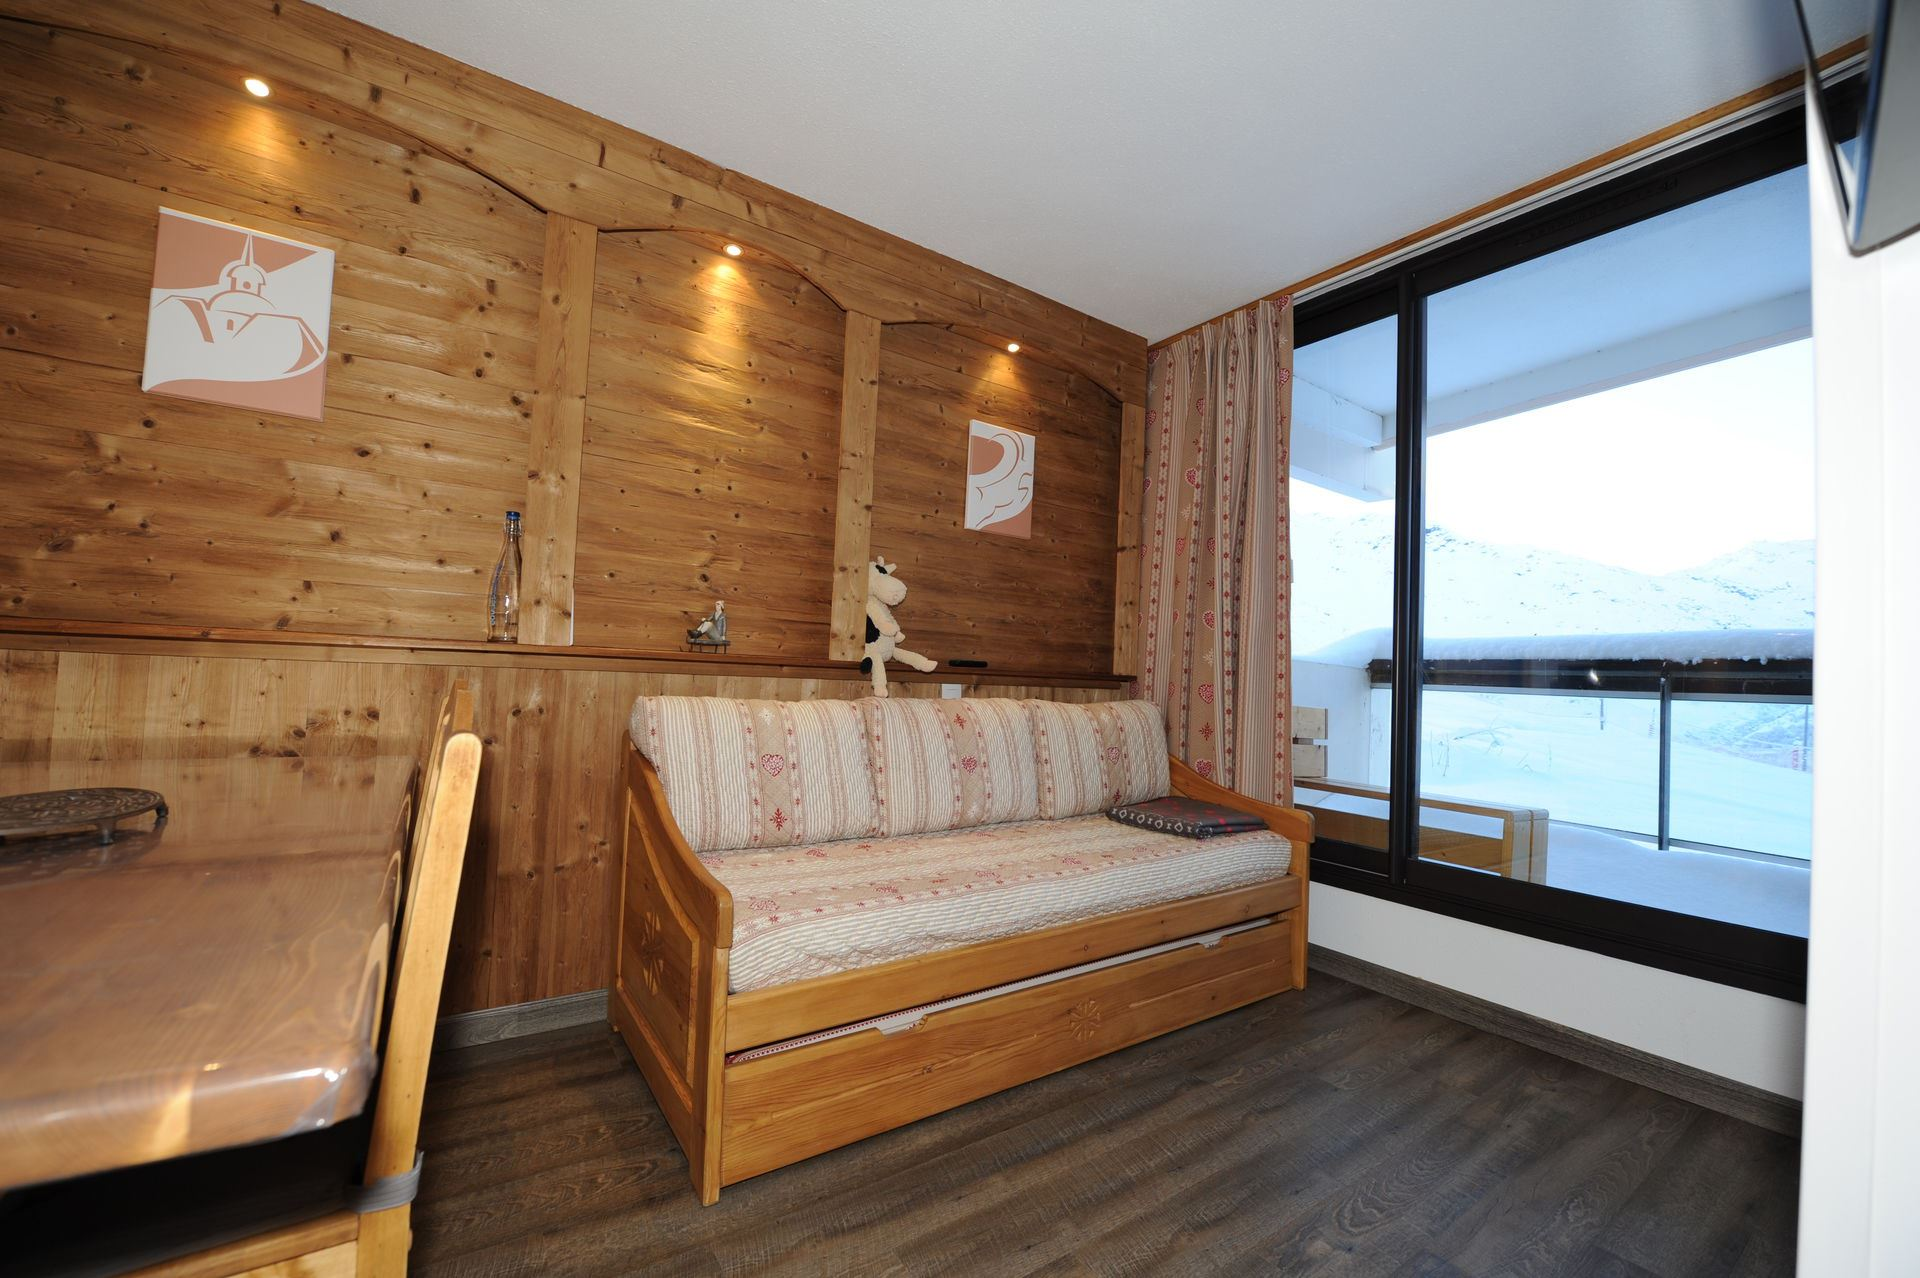 2 Rooms 5 Pers ski-in ski-out / ARMOISE 7